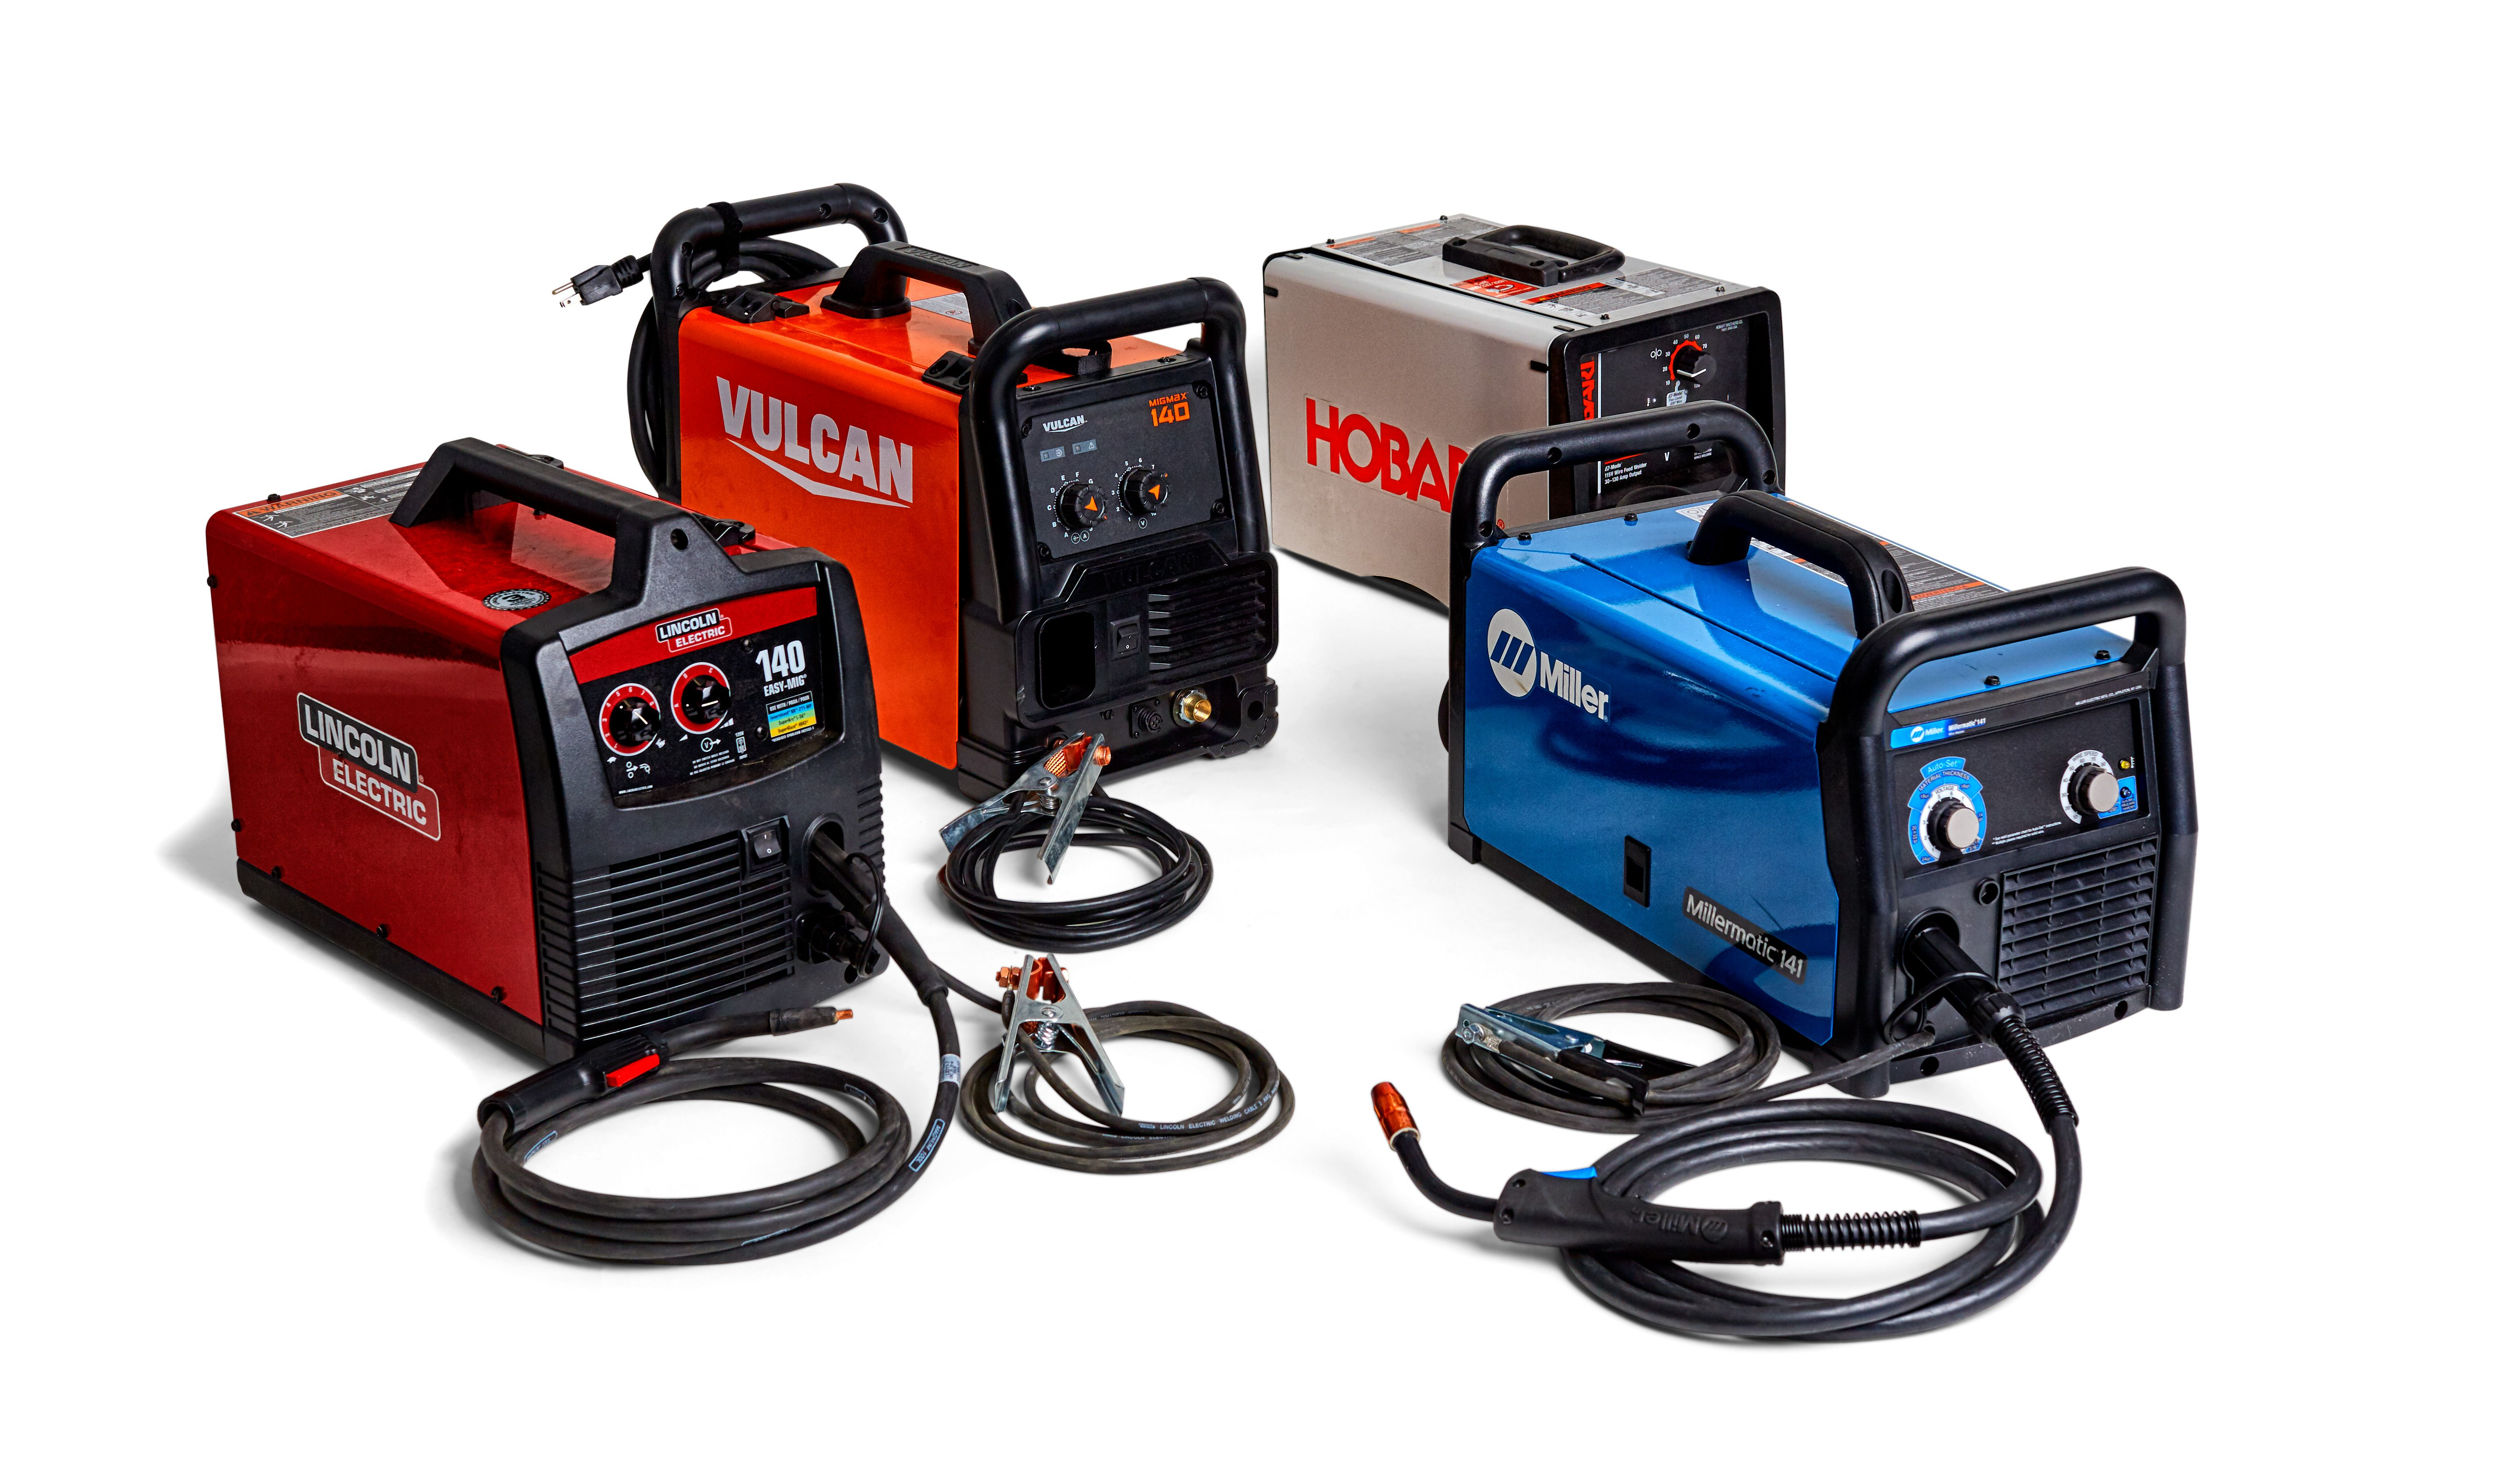 medium resolution of 4 best wire feed welders entry level welders review wiring diagram for lincoln handy mig get free image about wiring